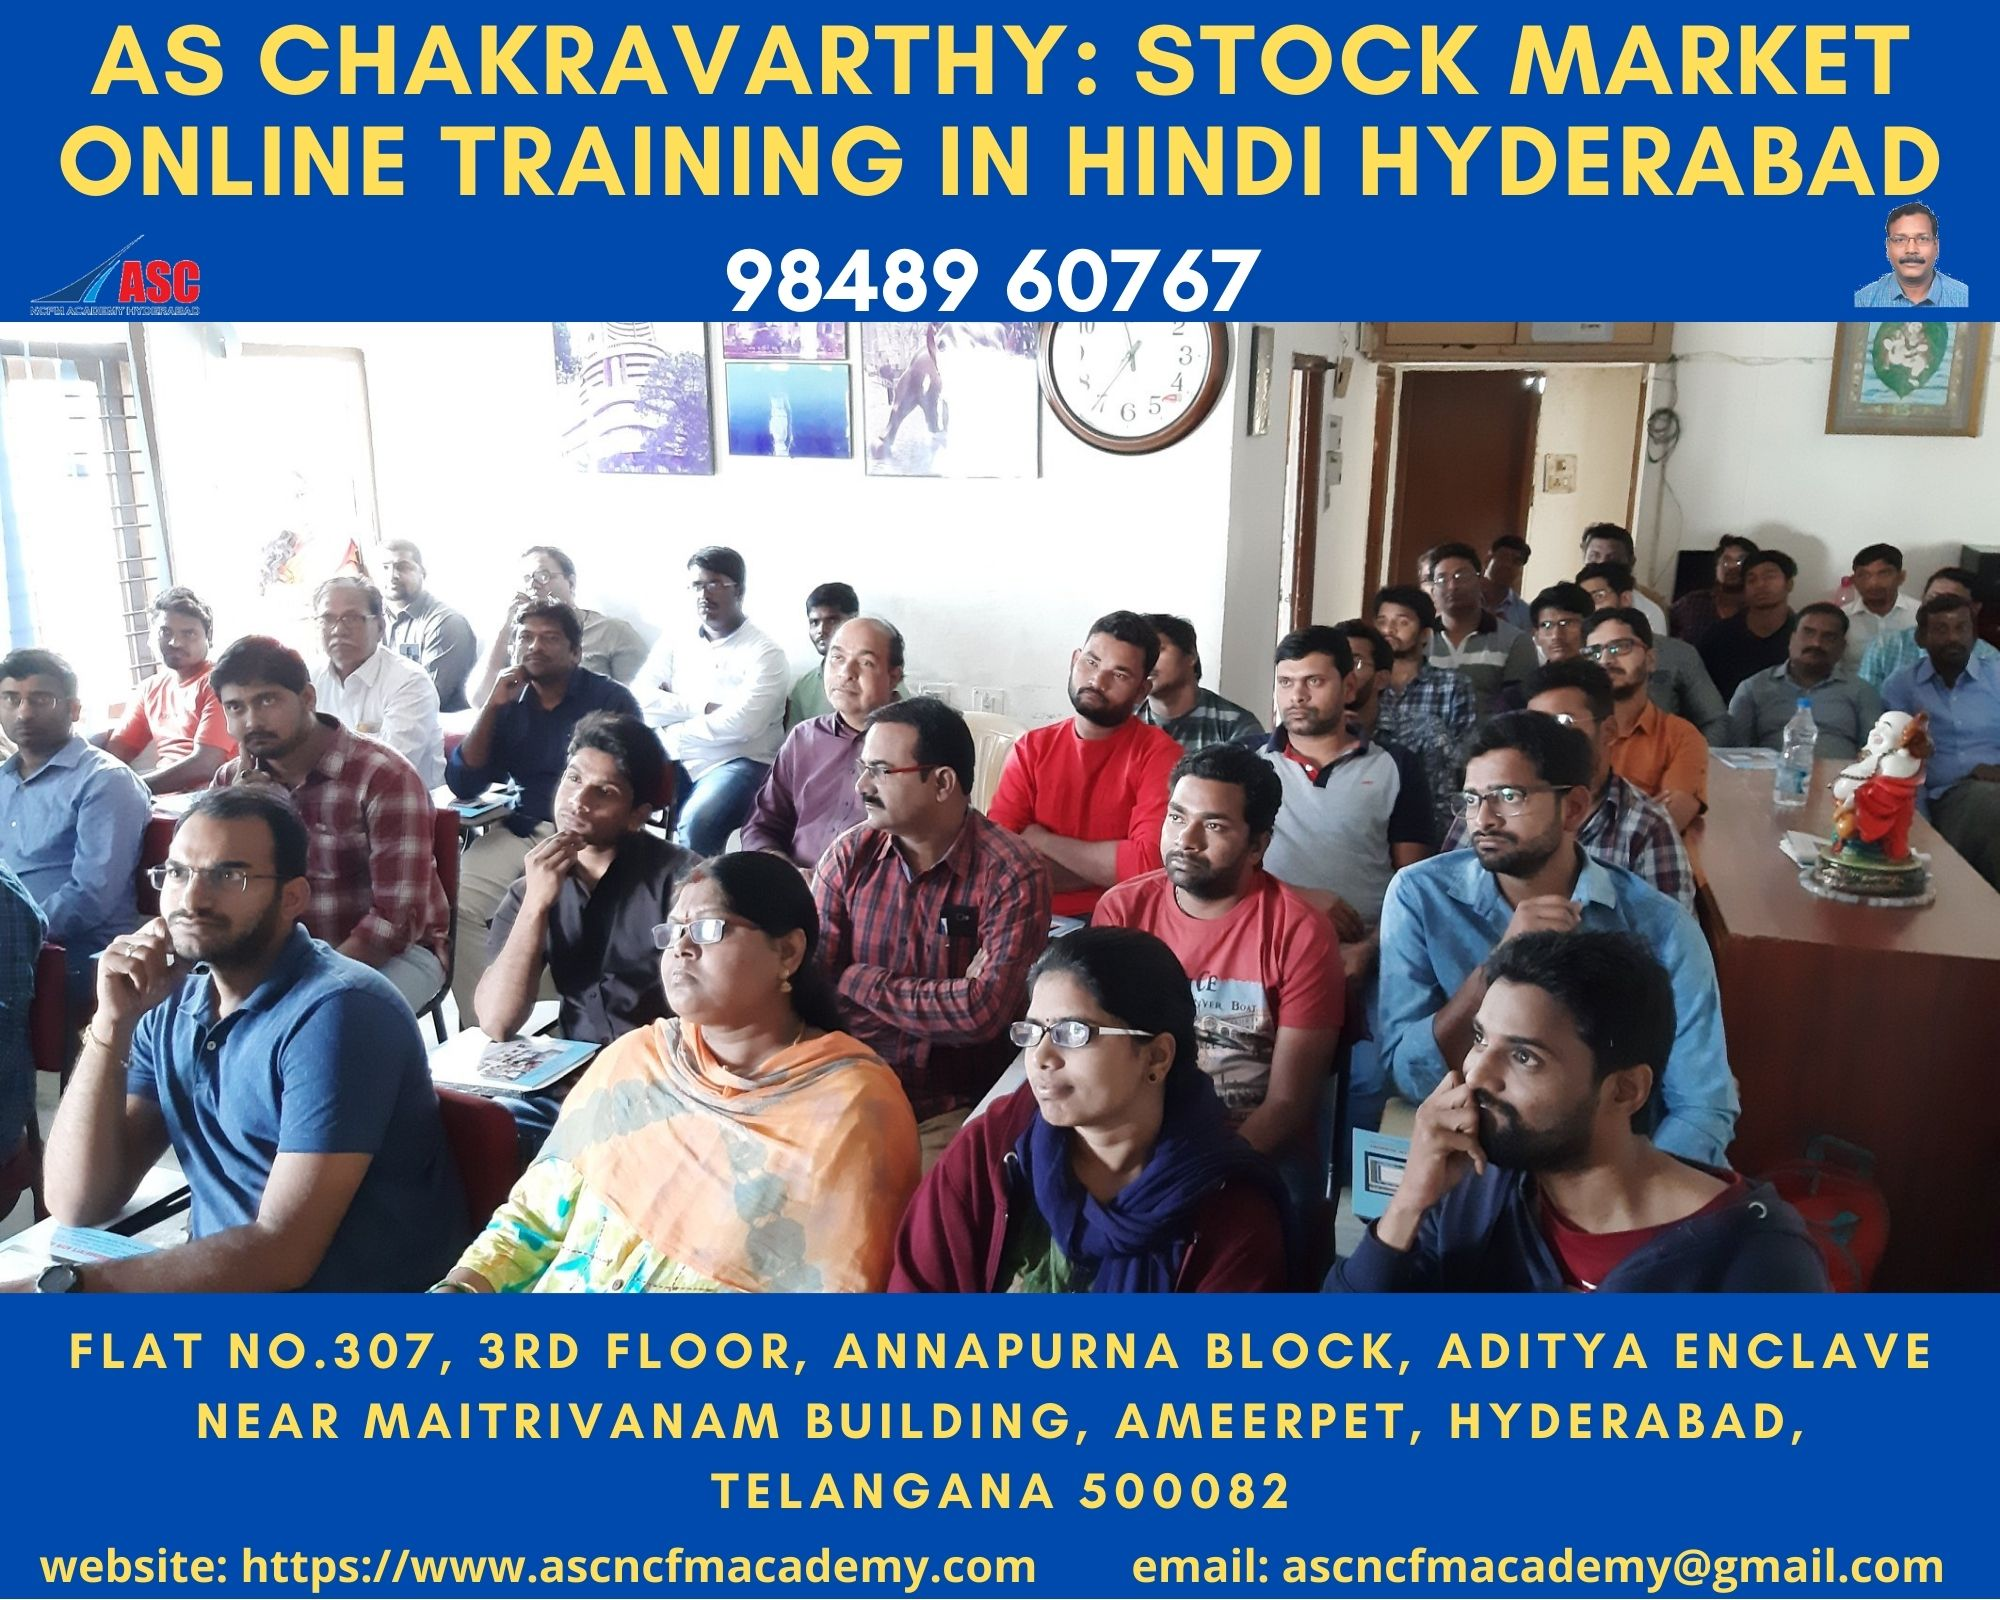 Online Stock Market Technical Training in Hindi Hyderabad